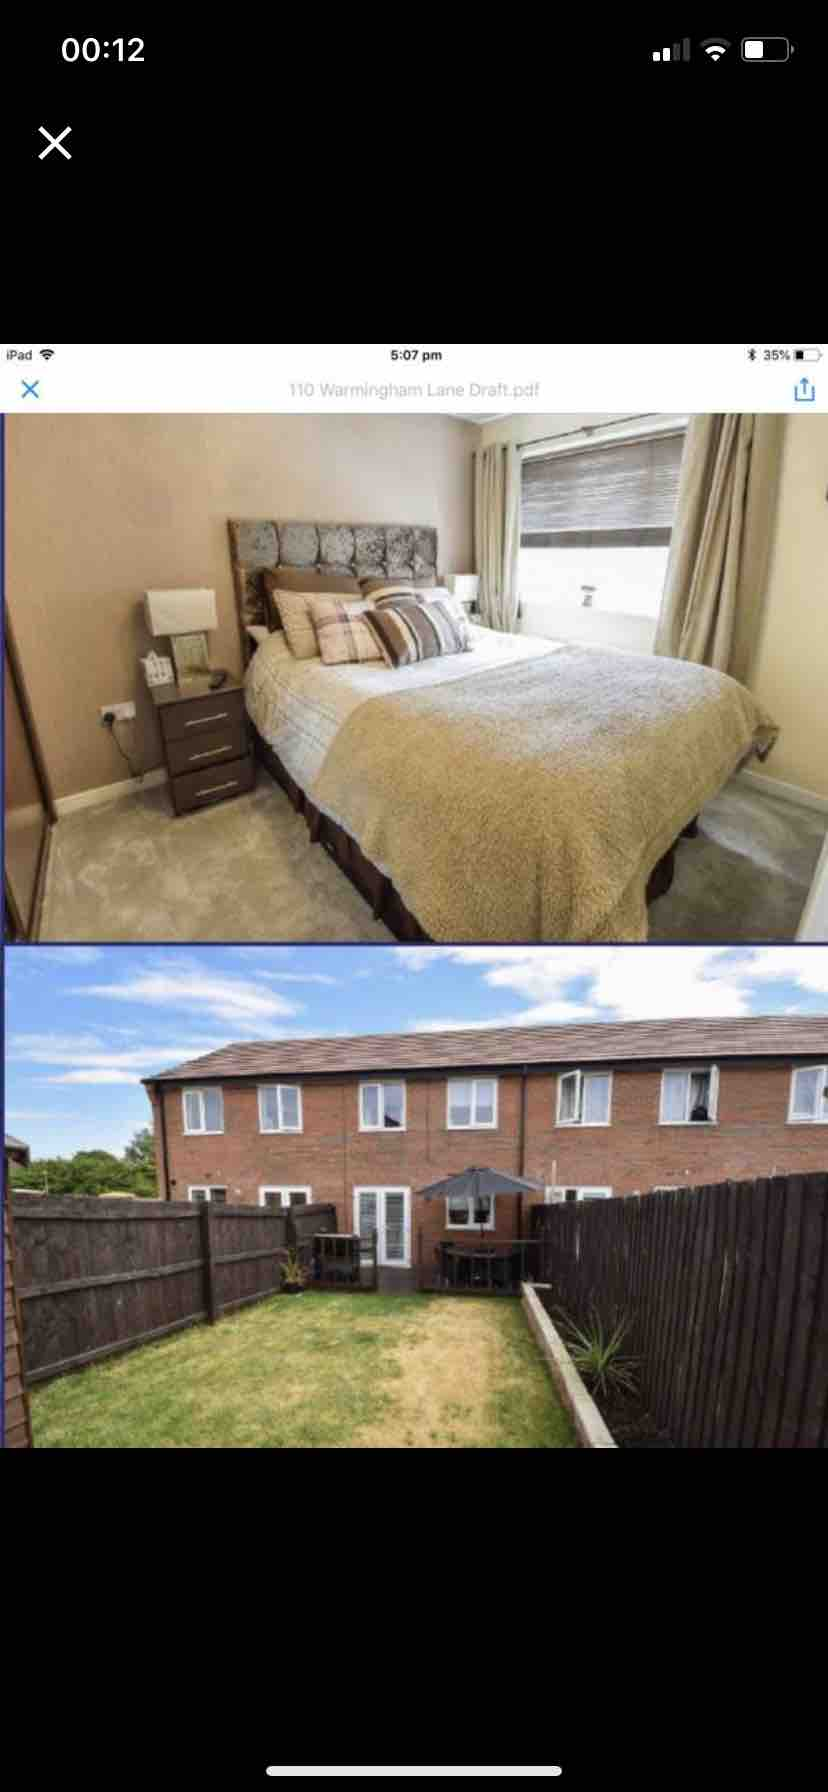 1 room in Warmingham, Middlewich, CW10 0HN RoomsLocal image